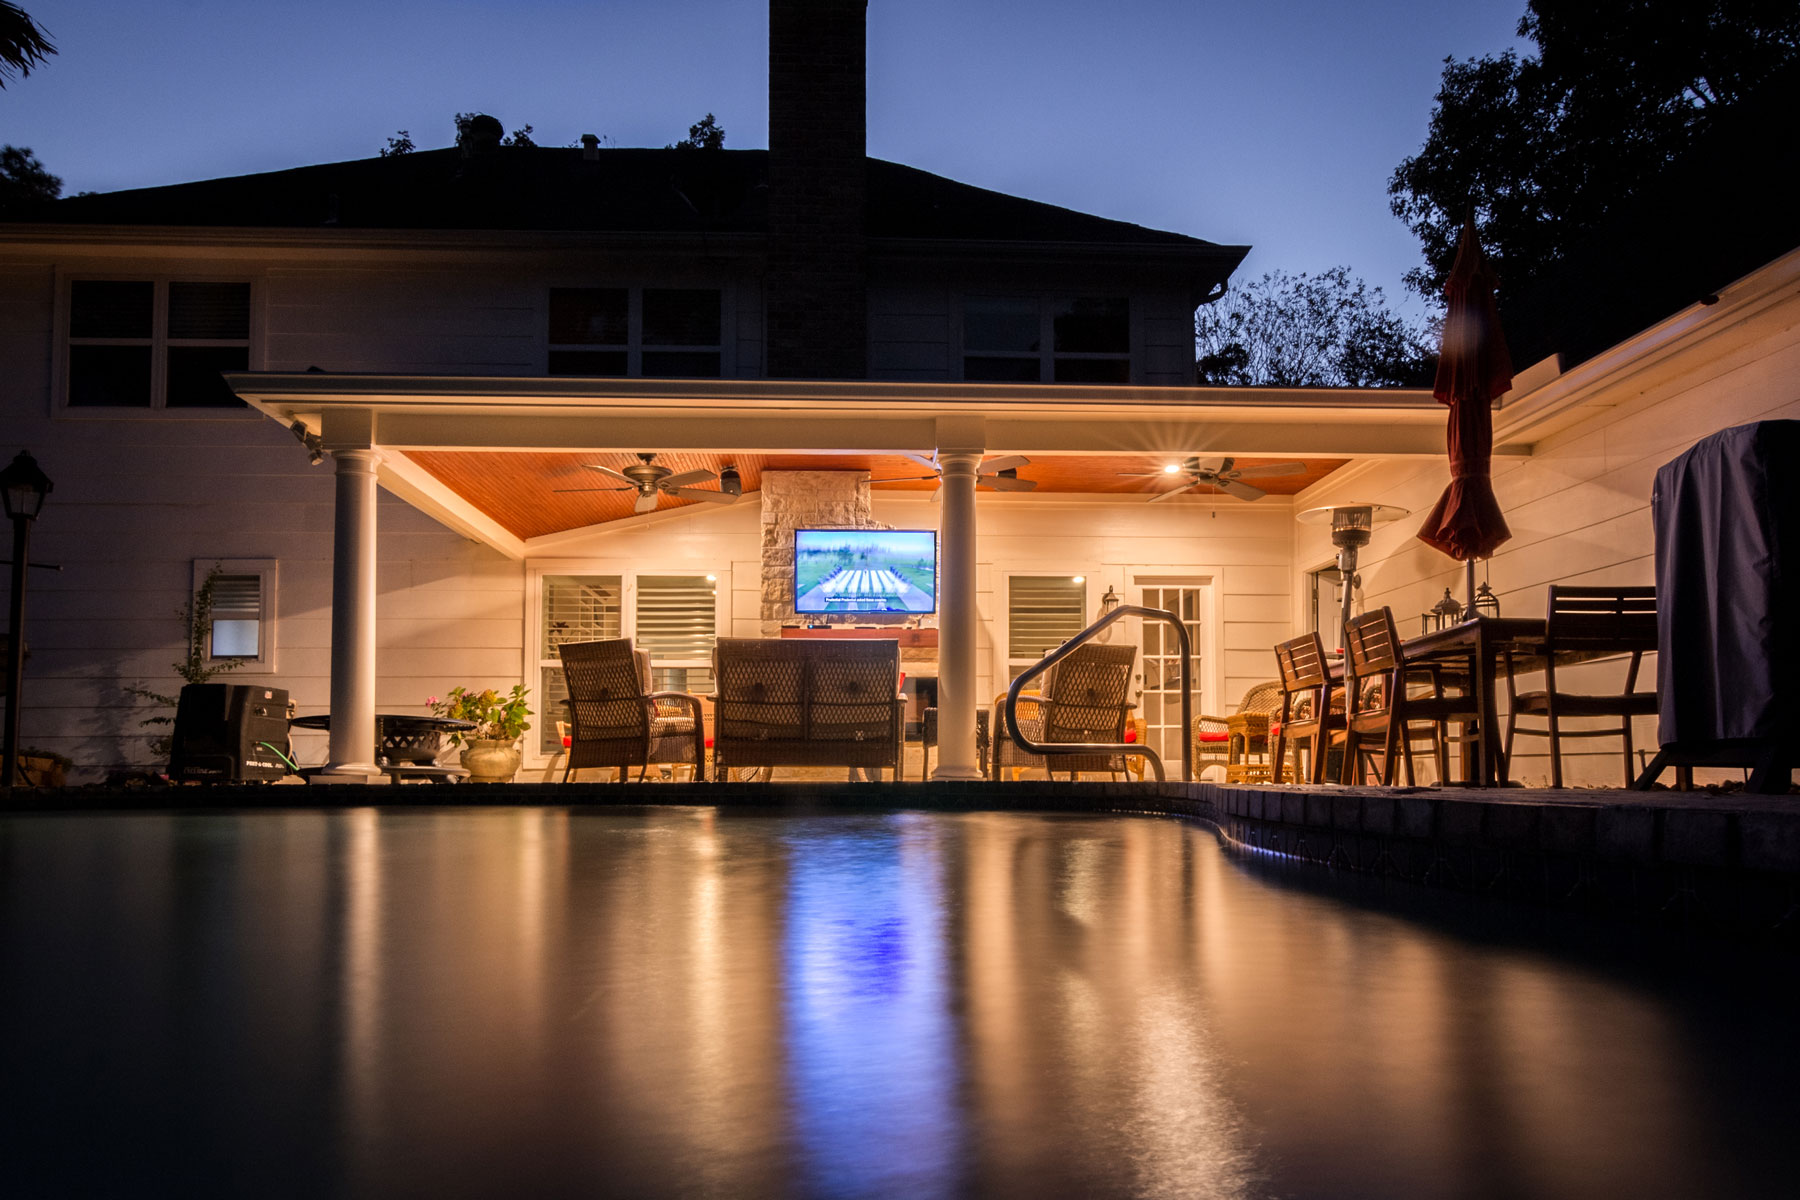 Patio Cover in Katy Texas - HHI Patio Covers